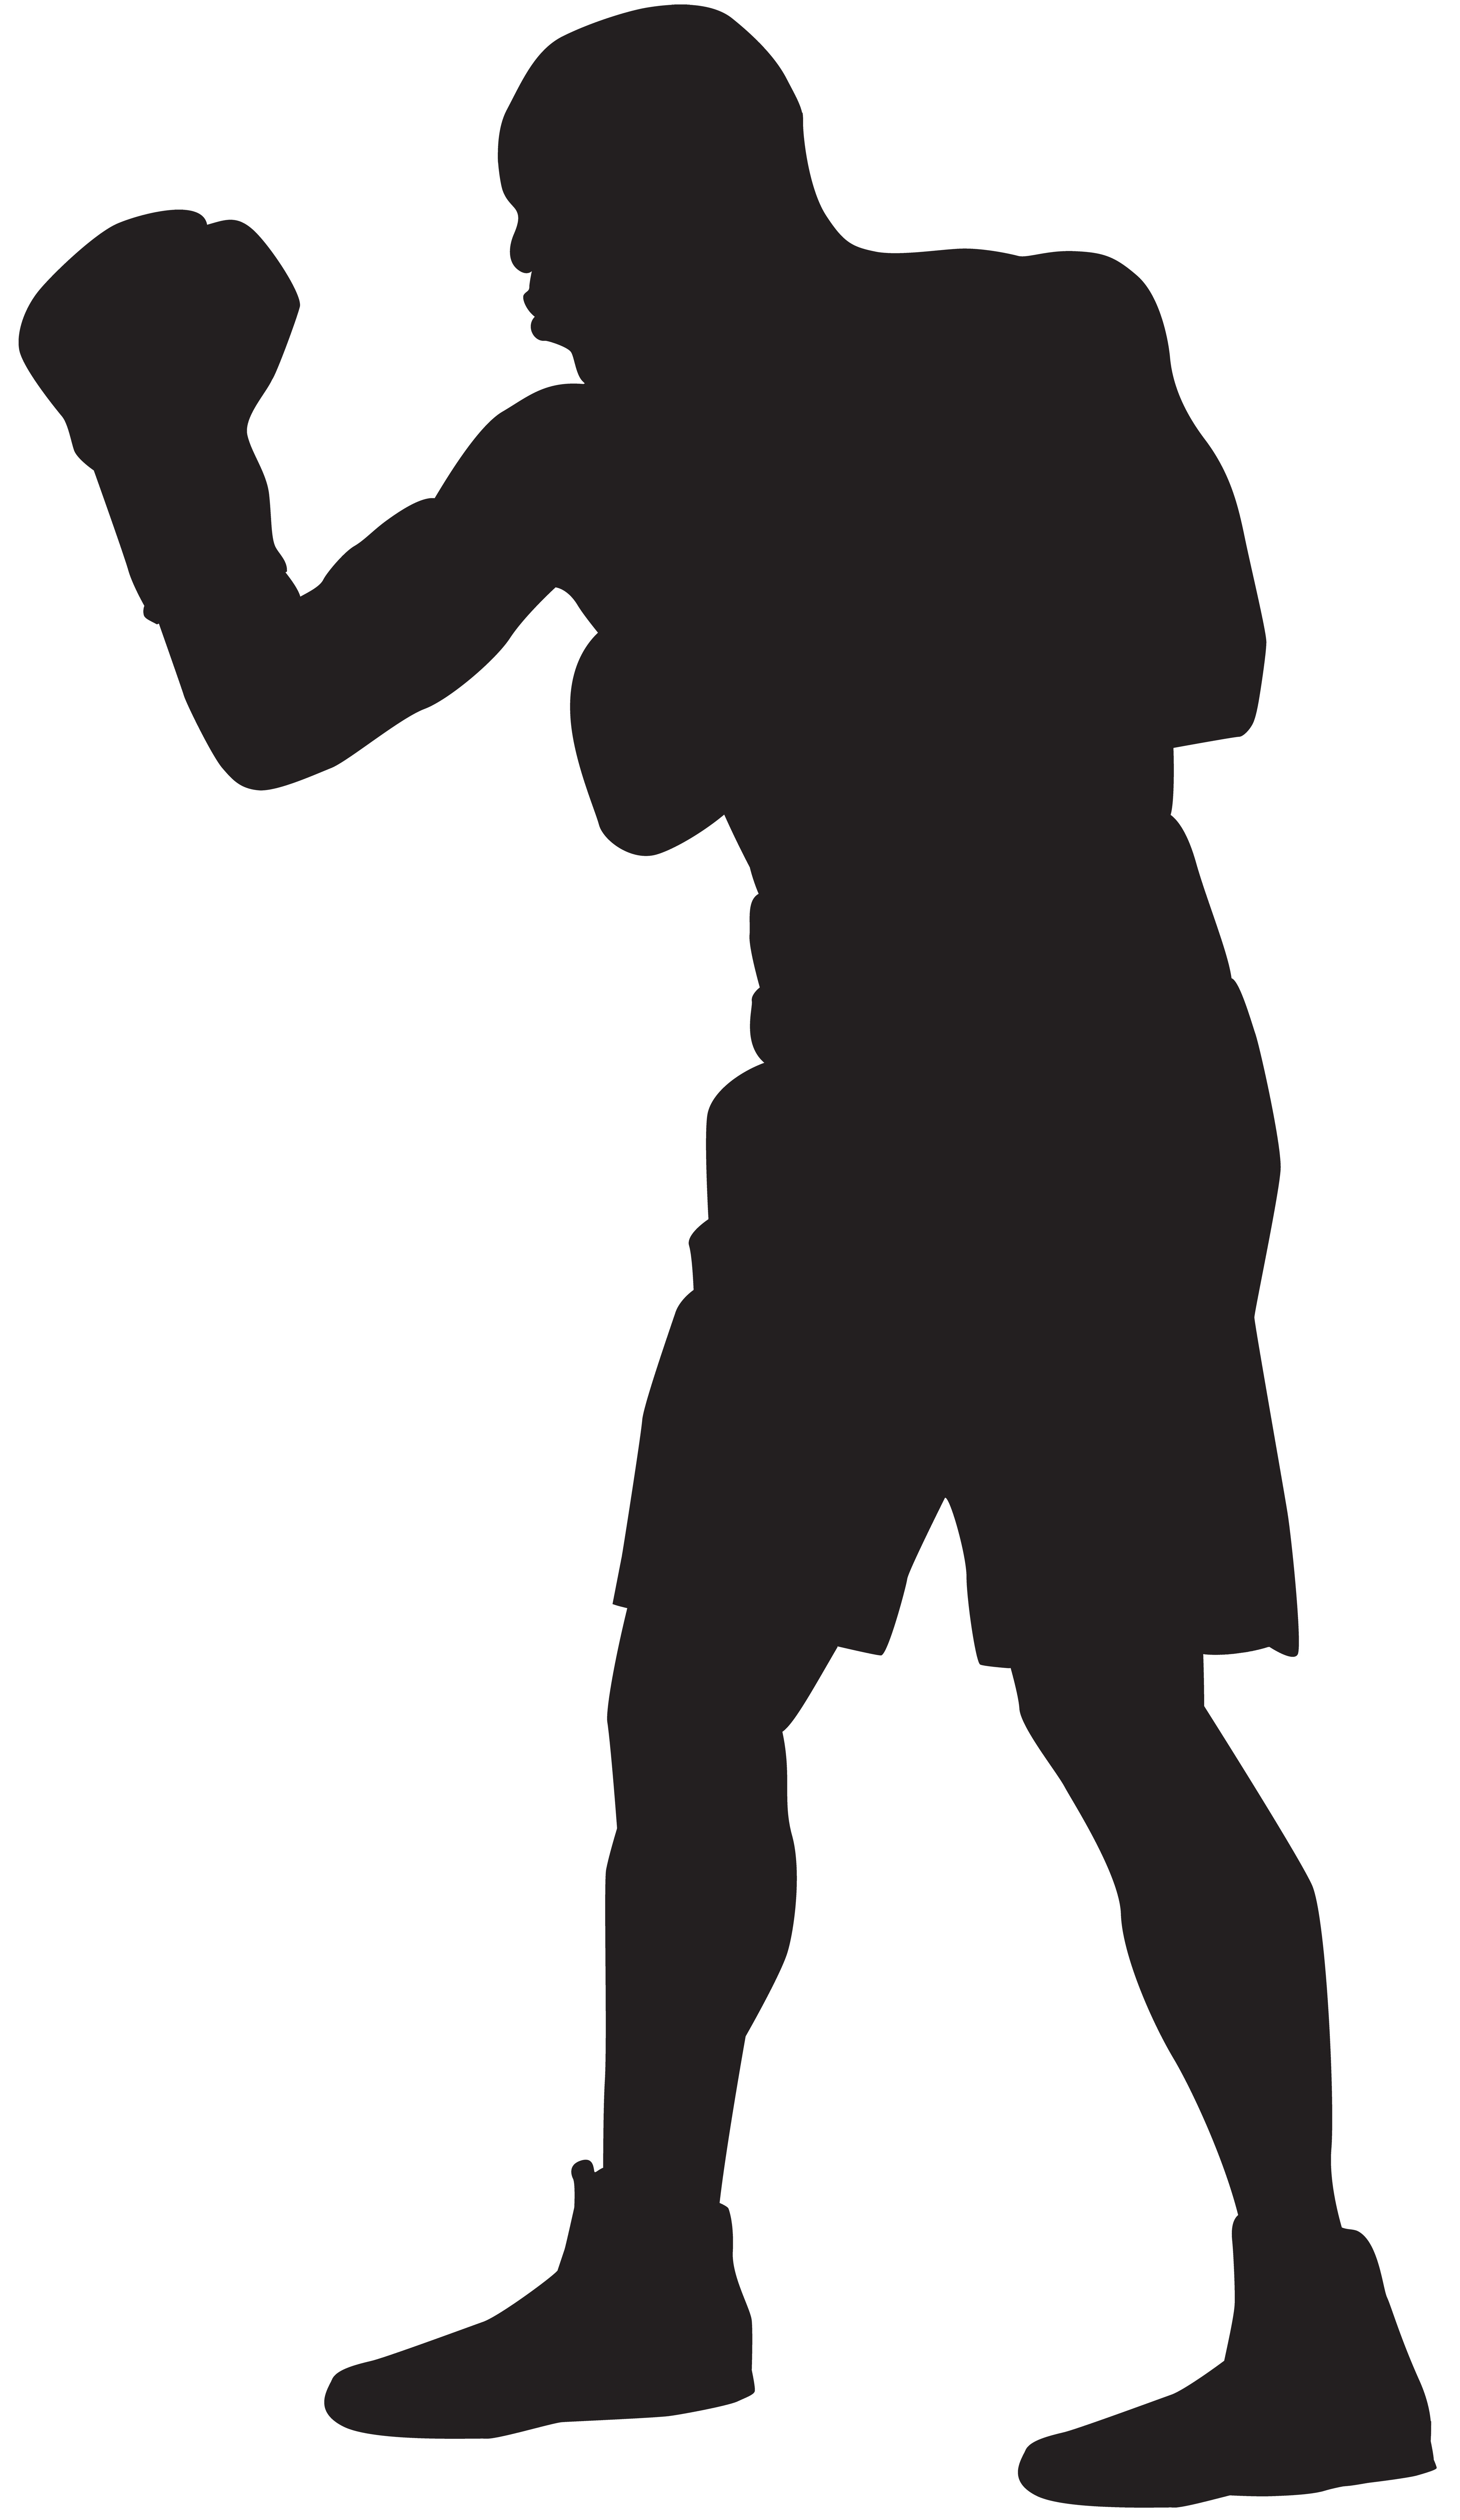 vector freeuse stock Boxer clipart. Silhouette png clip art